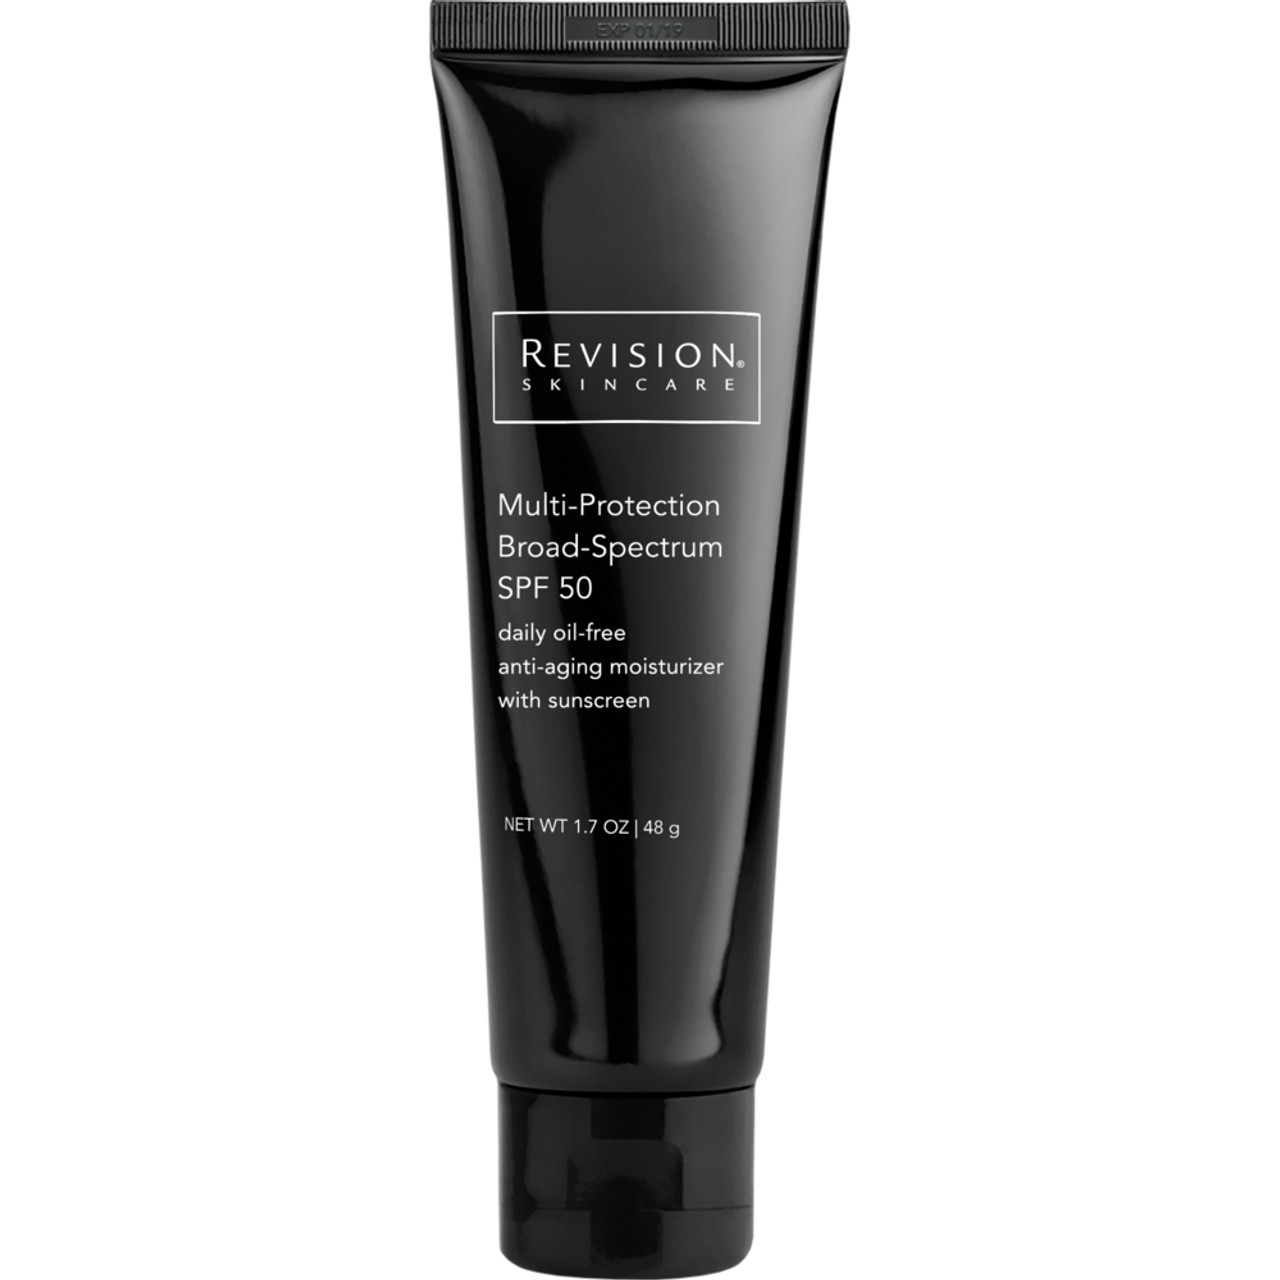 Revision Multi-Protection Broad-Spectrum SPF 50